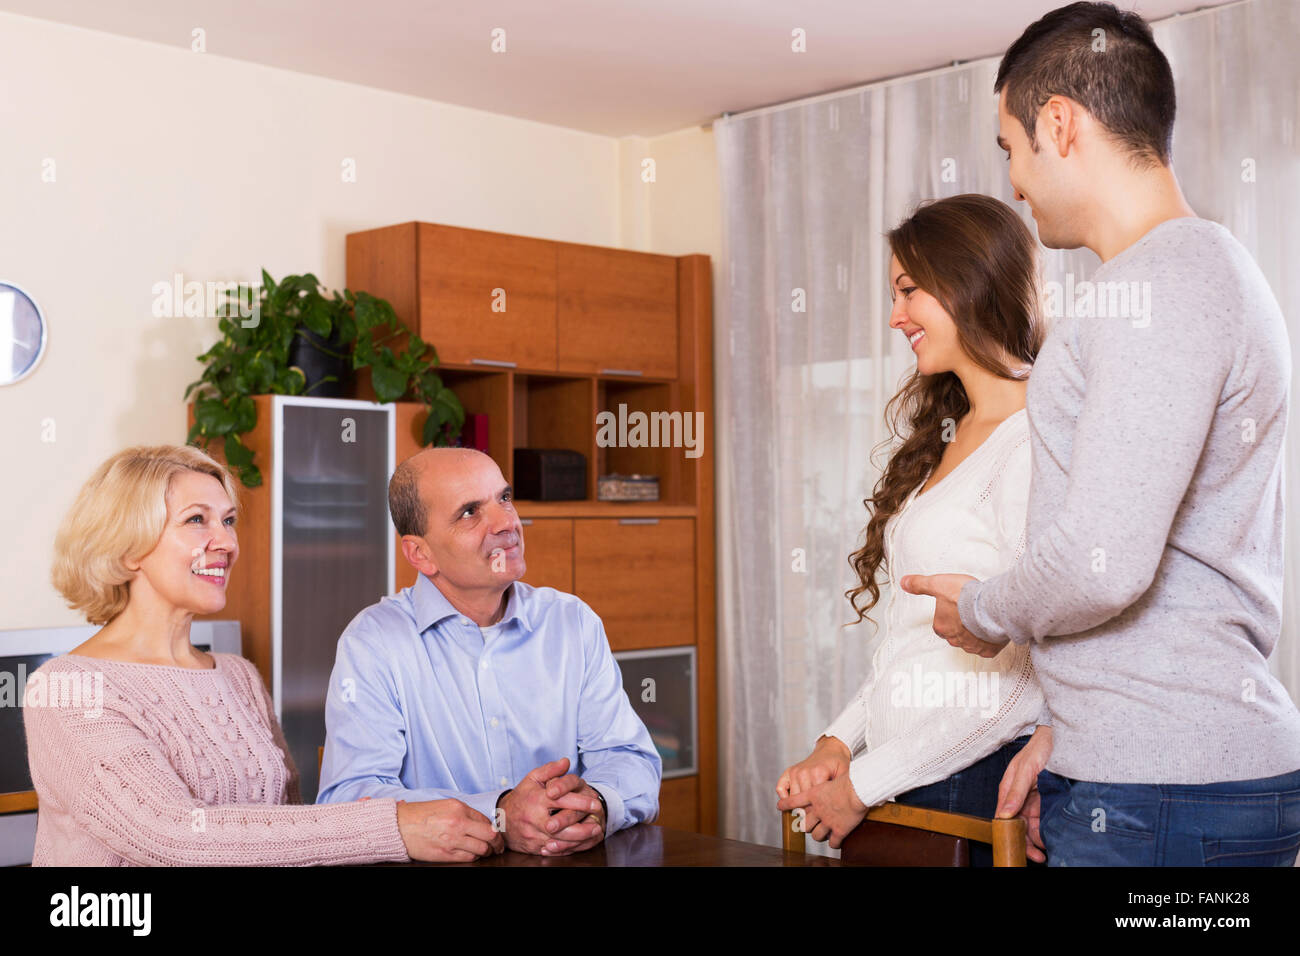 parents meeting girlfriend of their son  yestoday - Stock Image